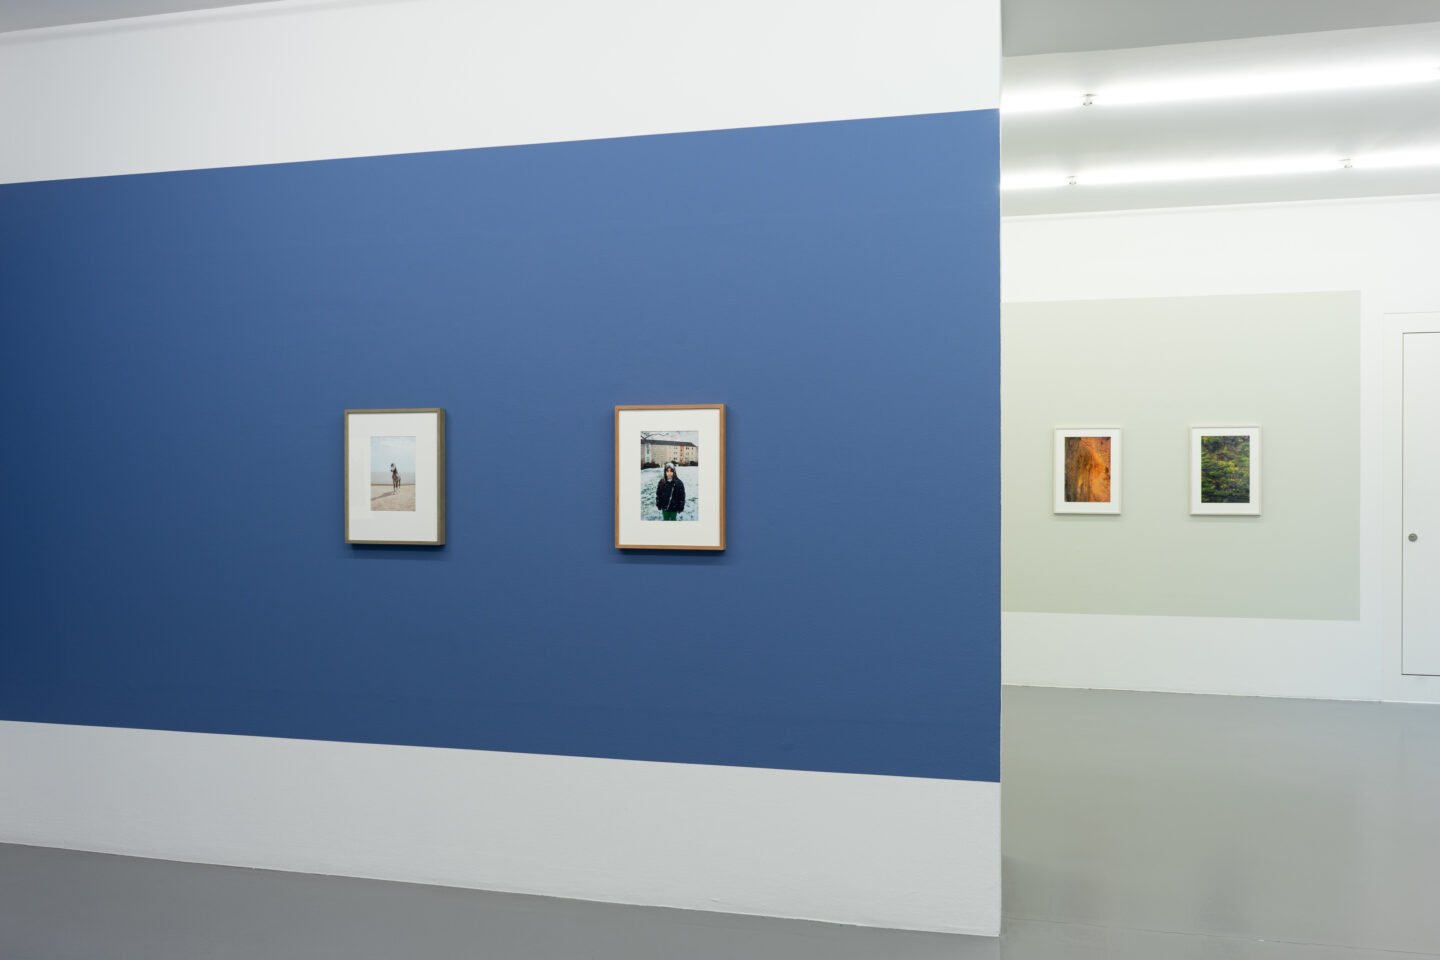 Exhibition View Jitka Hanzlová Soloshow at Mai 36, Zurich, 2020 / Courtesy: the artist and Mai 36